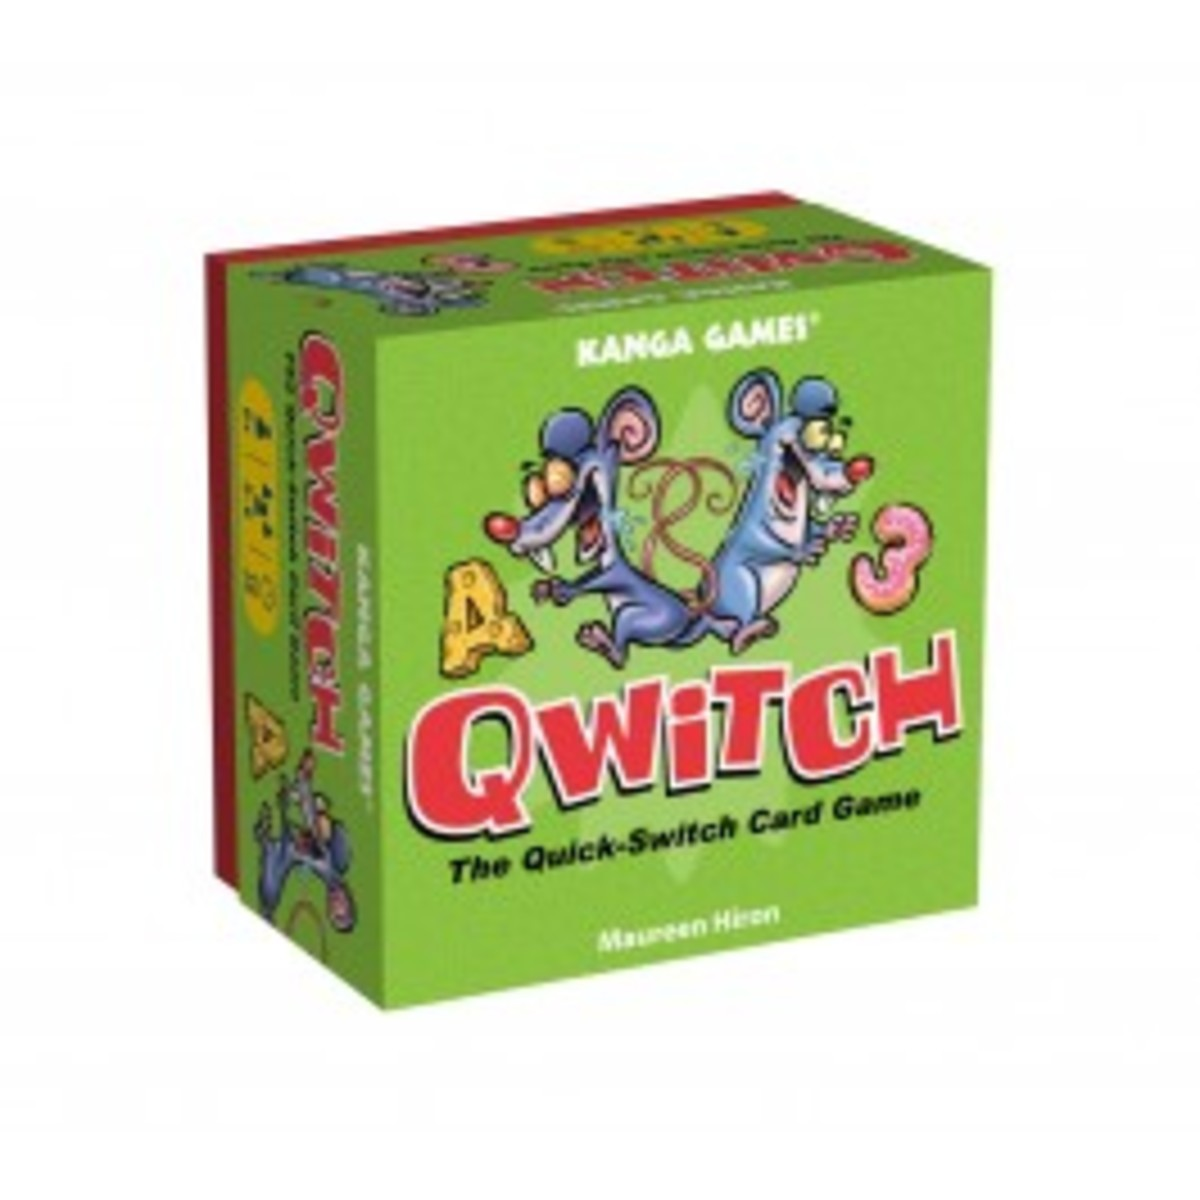 Qwitch (Chinese Version)